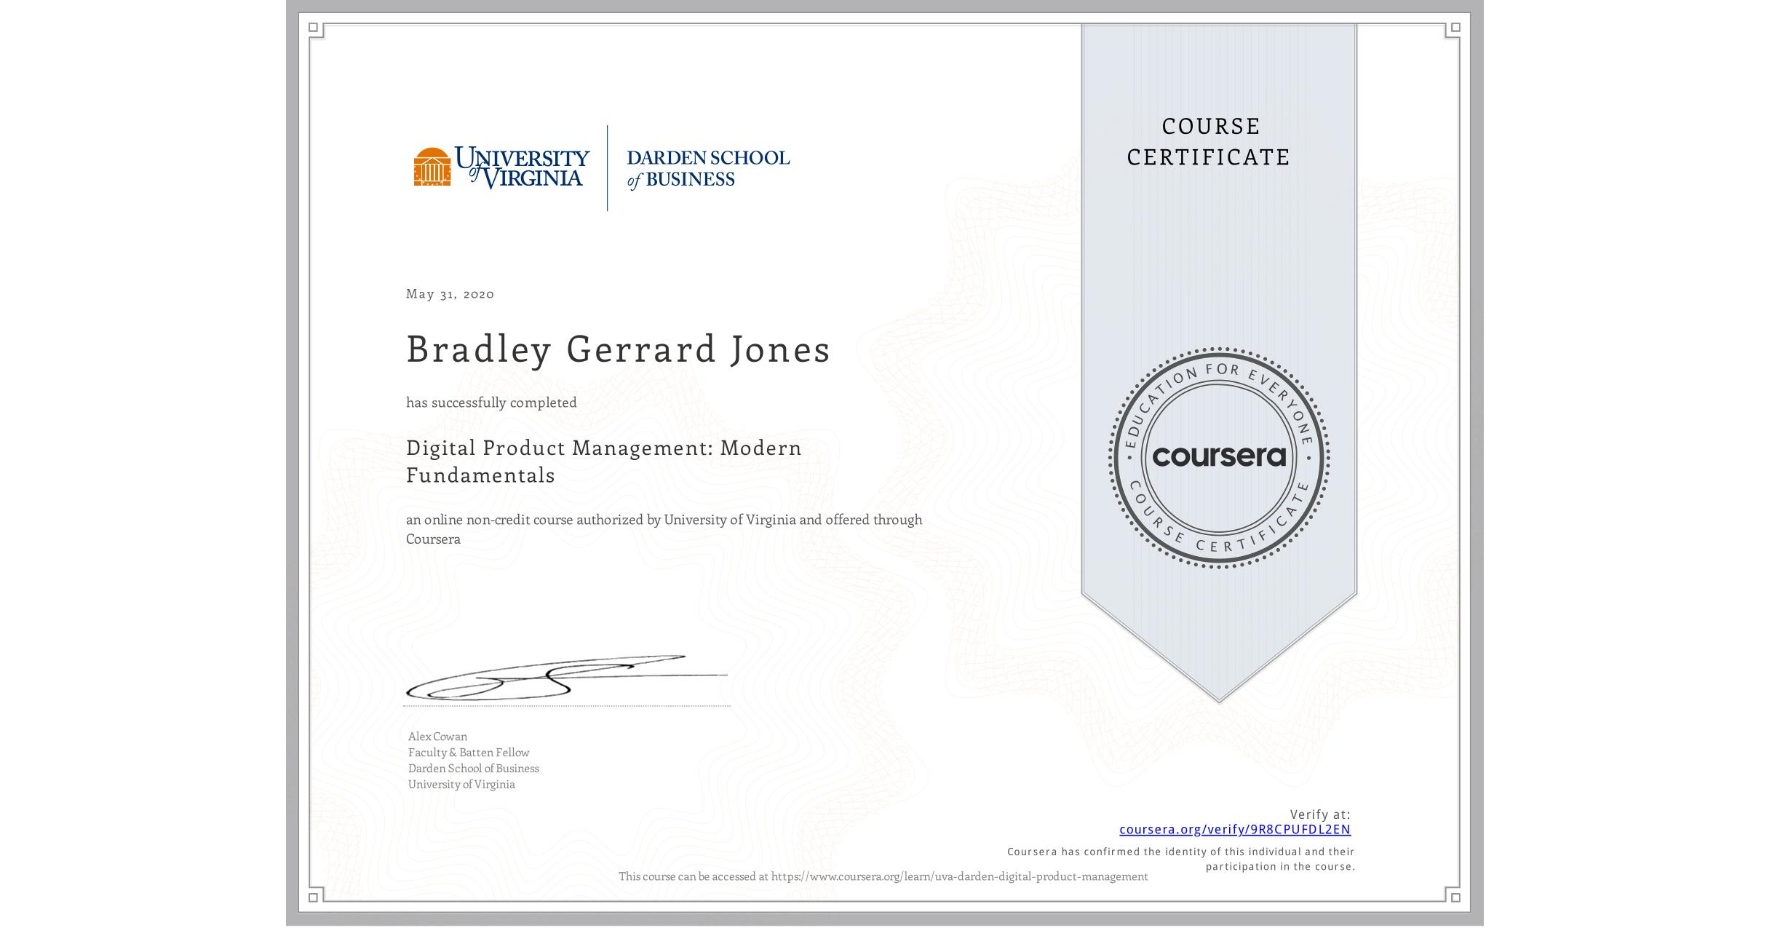 View certificate for Bradley Gerrard Jones, Digital Product Management: Modern Fundamentals, an online non-credit course authorized by University of Virginia and offered through Coursera